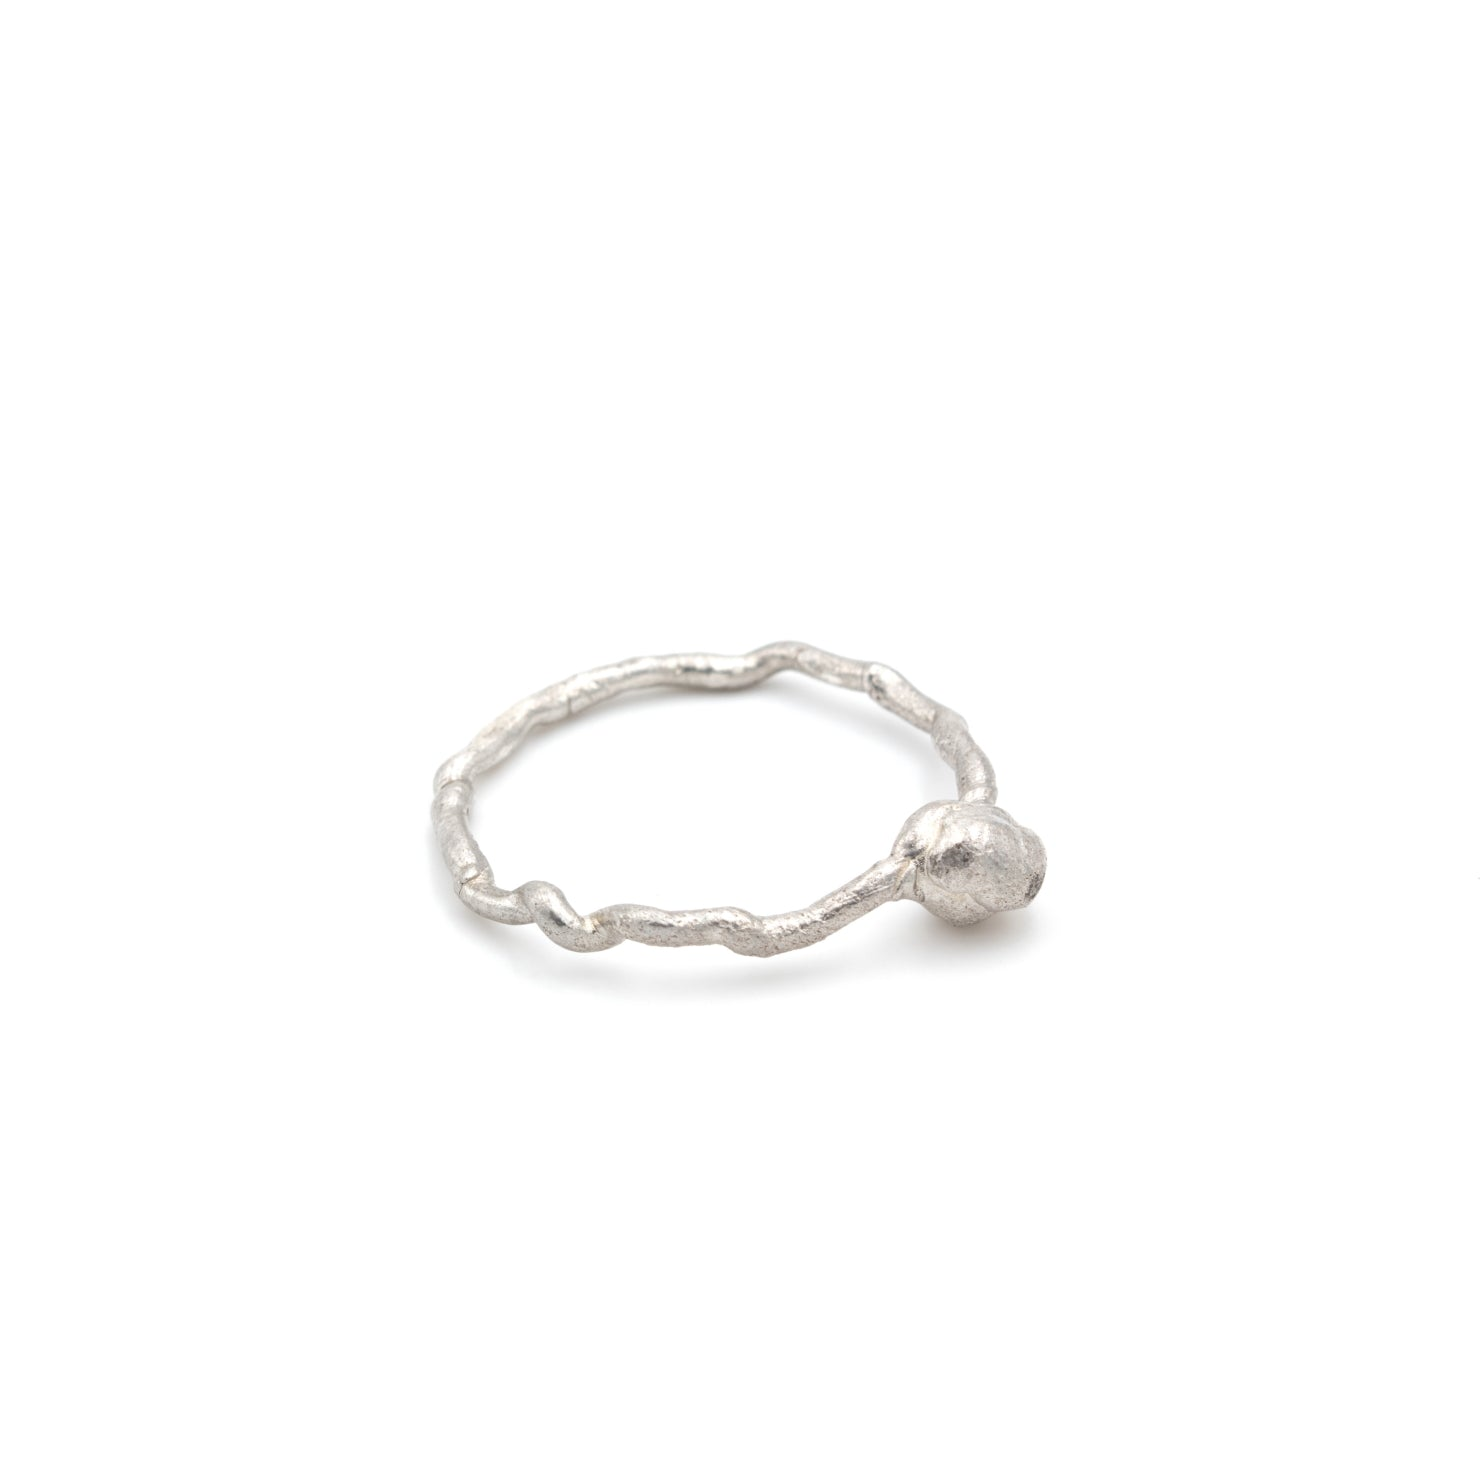 minimal organic jewelry design, silver ring handmade in Vienna, by Izabella Petrut